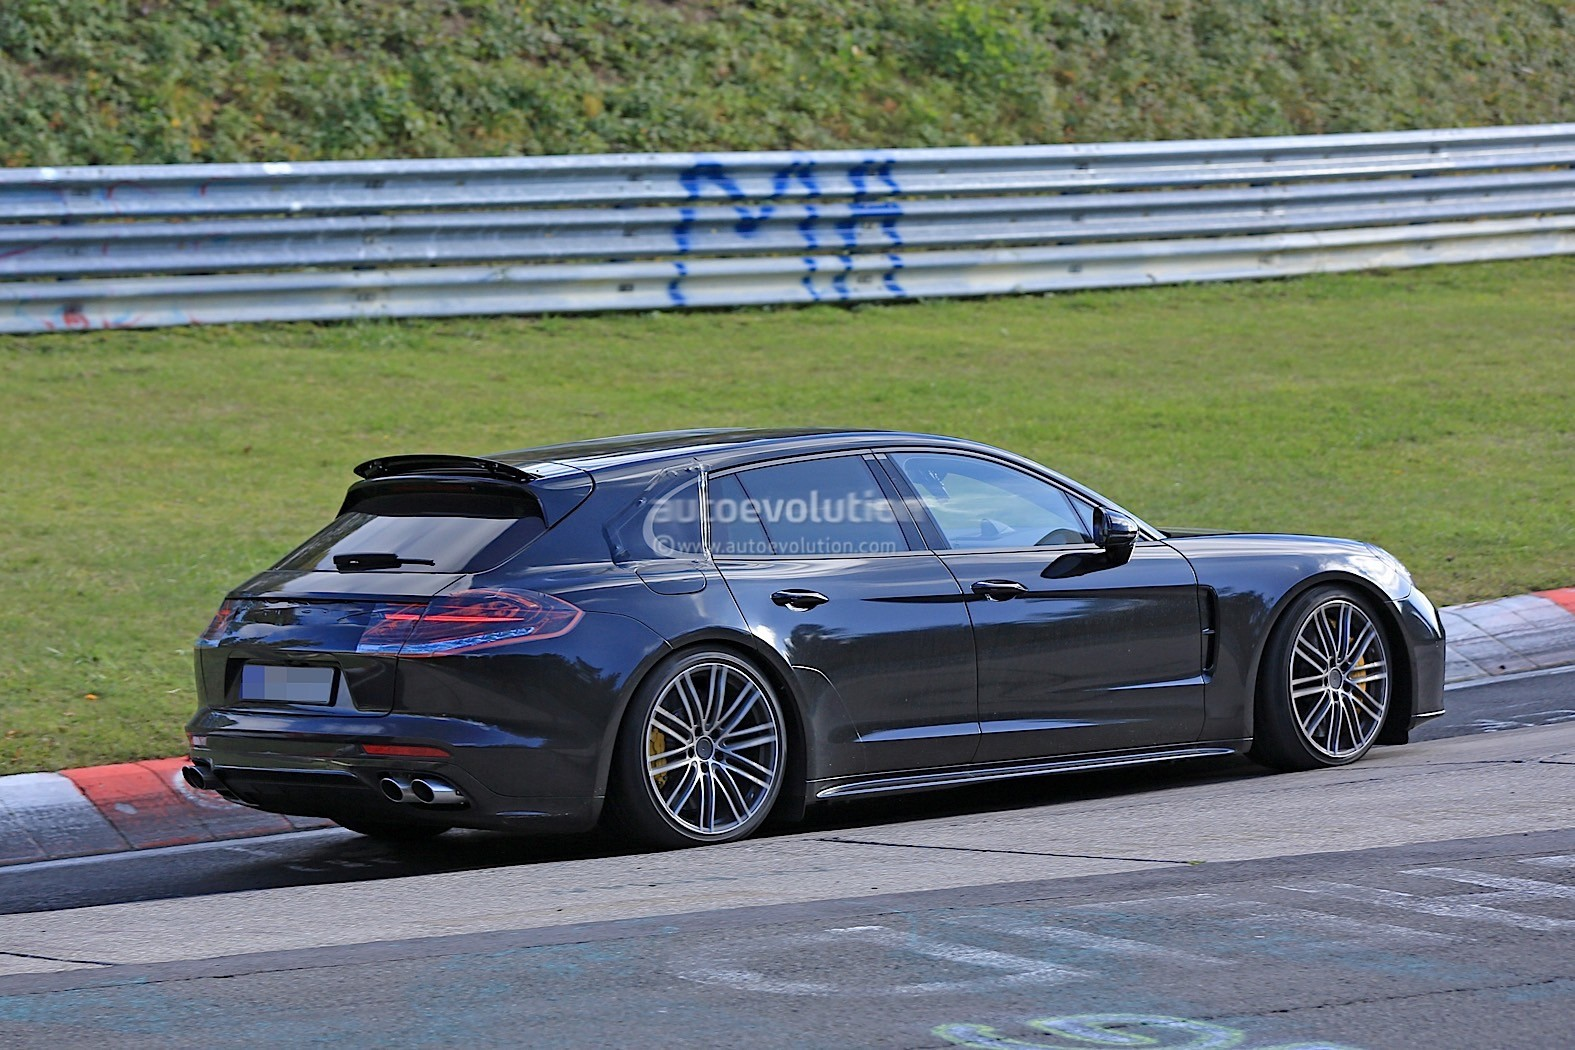 2018 Porsche Panamera Sport Turismo Wagon Spotted With Retractable Spoiler 112539 on robotic horses